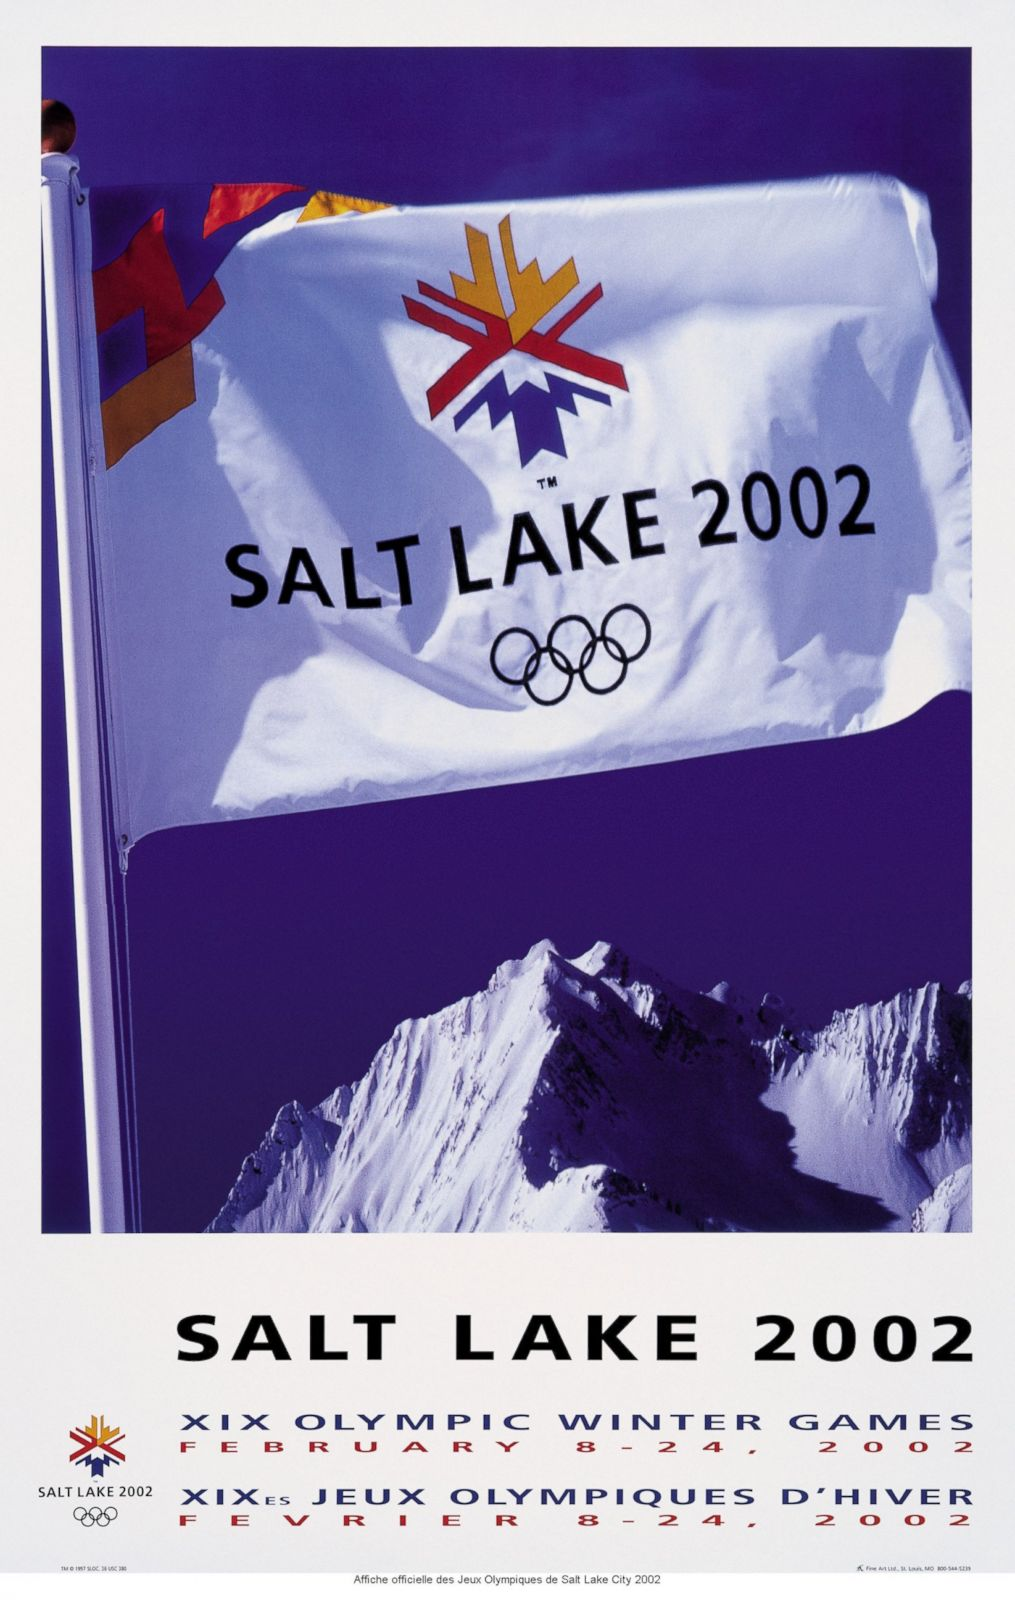 2002 Winter Olympics - Salt Lake City, Utah, United States